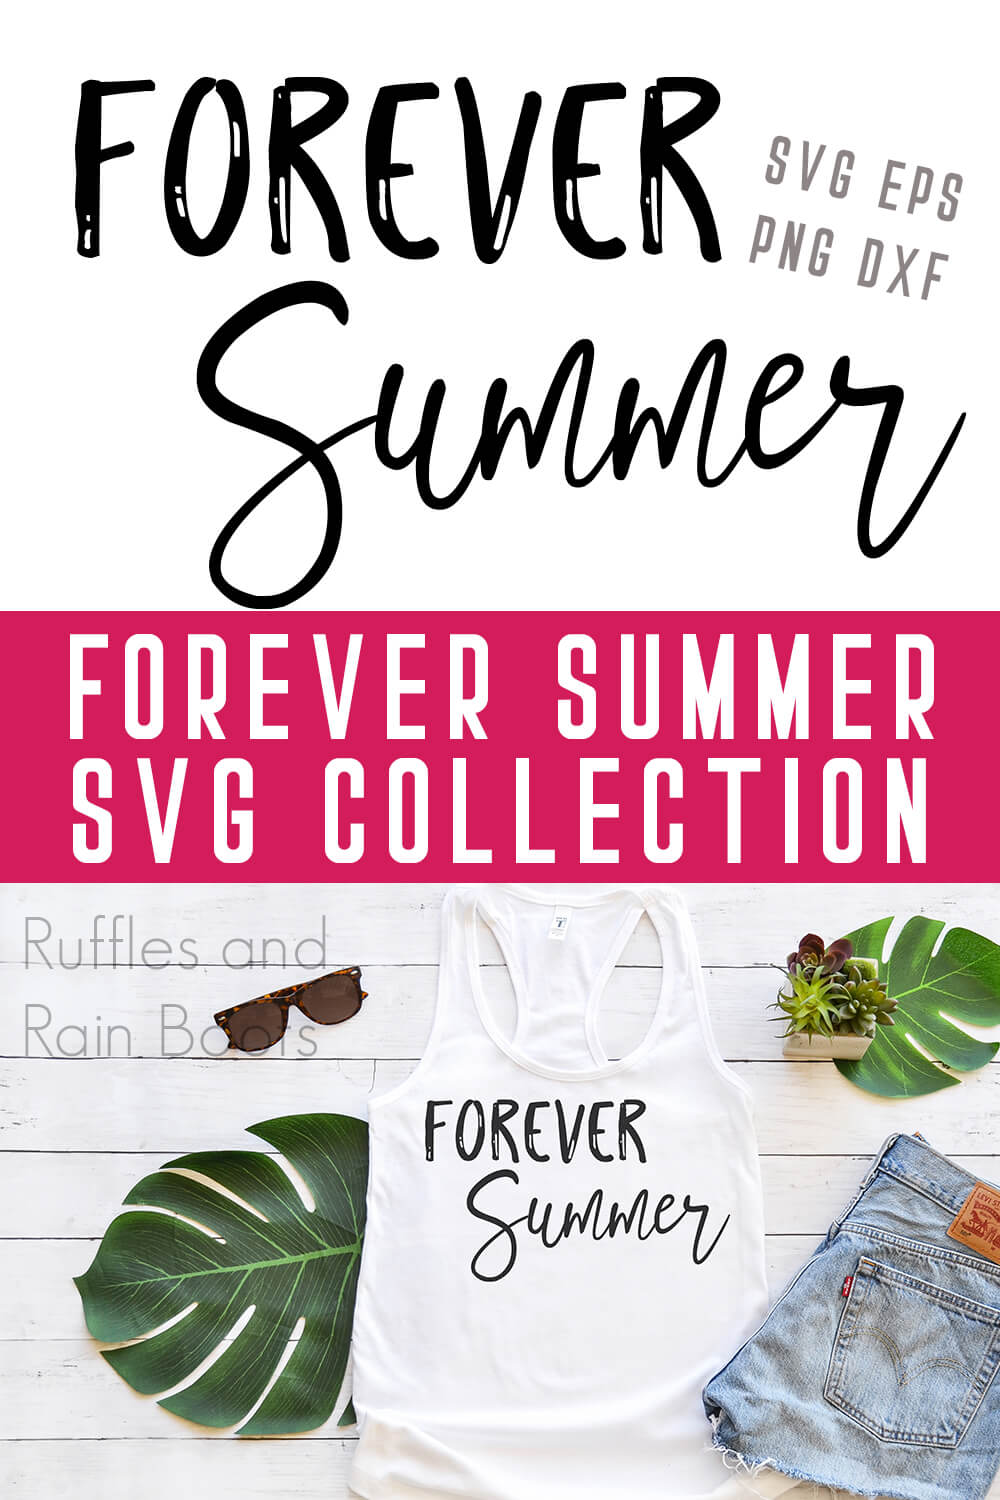 photo collage of forever summer free summer cutting machine file on a tank top with text which reads forever summer svg collection